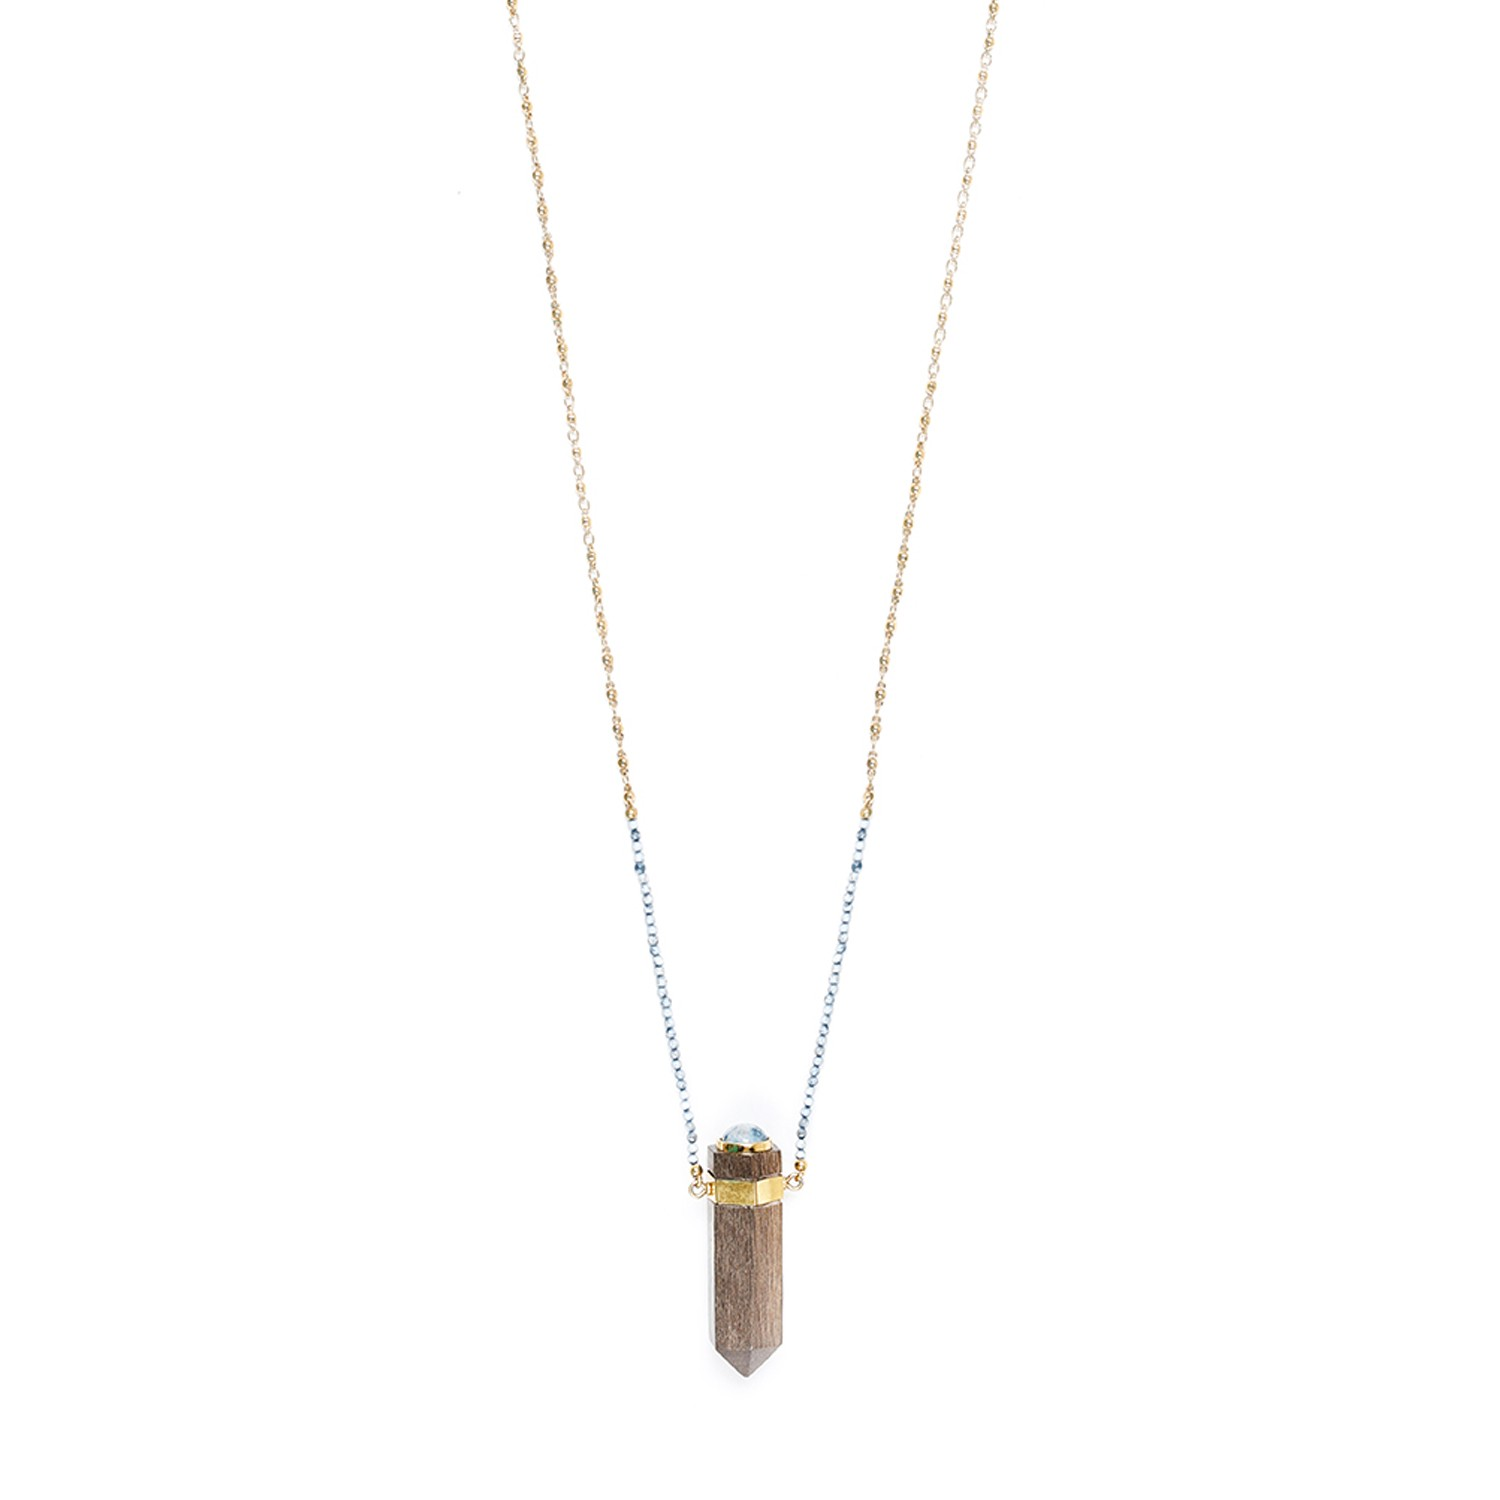 WOOD DIAMONDS collier long